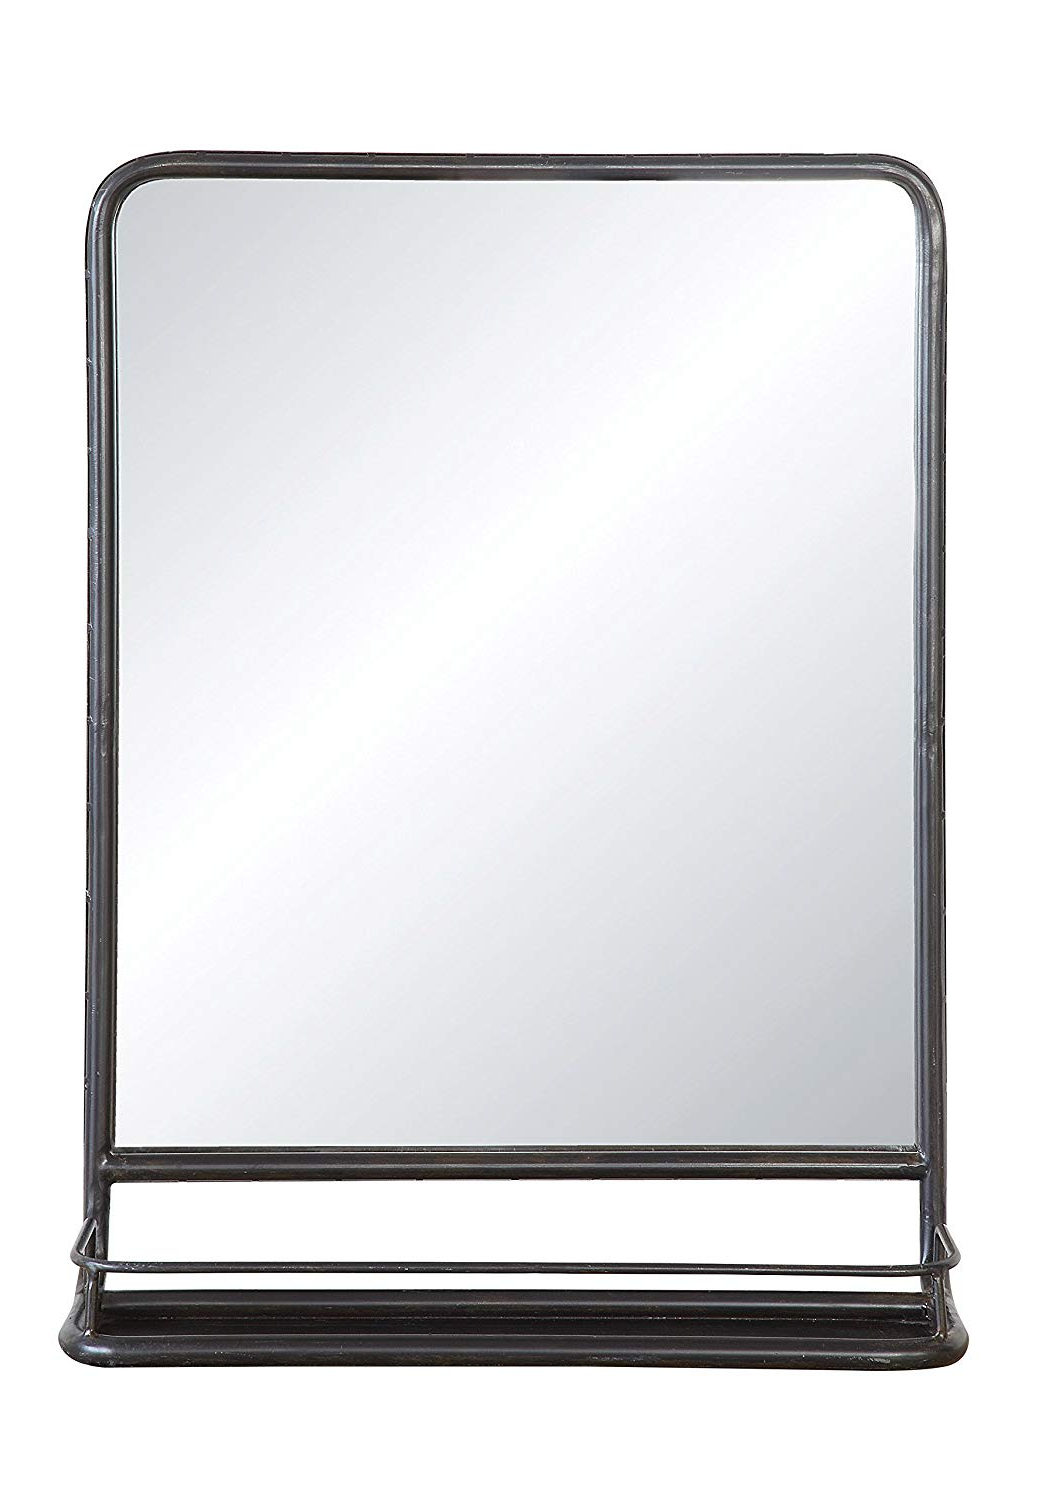 Creative Co Op Rectangle Metal Framed Wall Mirror With Shelf, Single Vanity, Black Pertaining To Famous Black Framed Wall Mirrors (View 11 of 20)